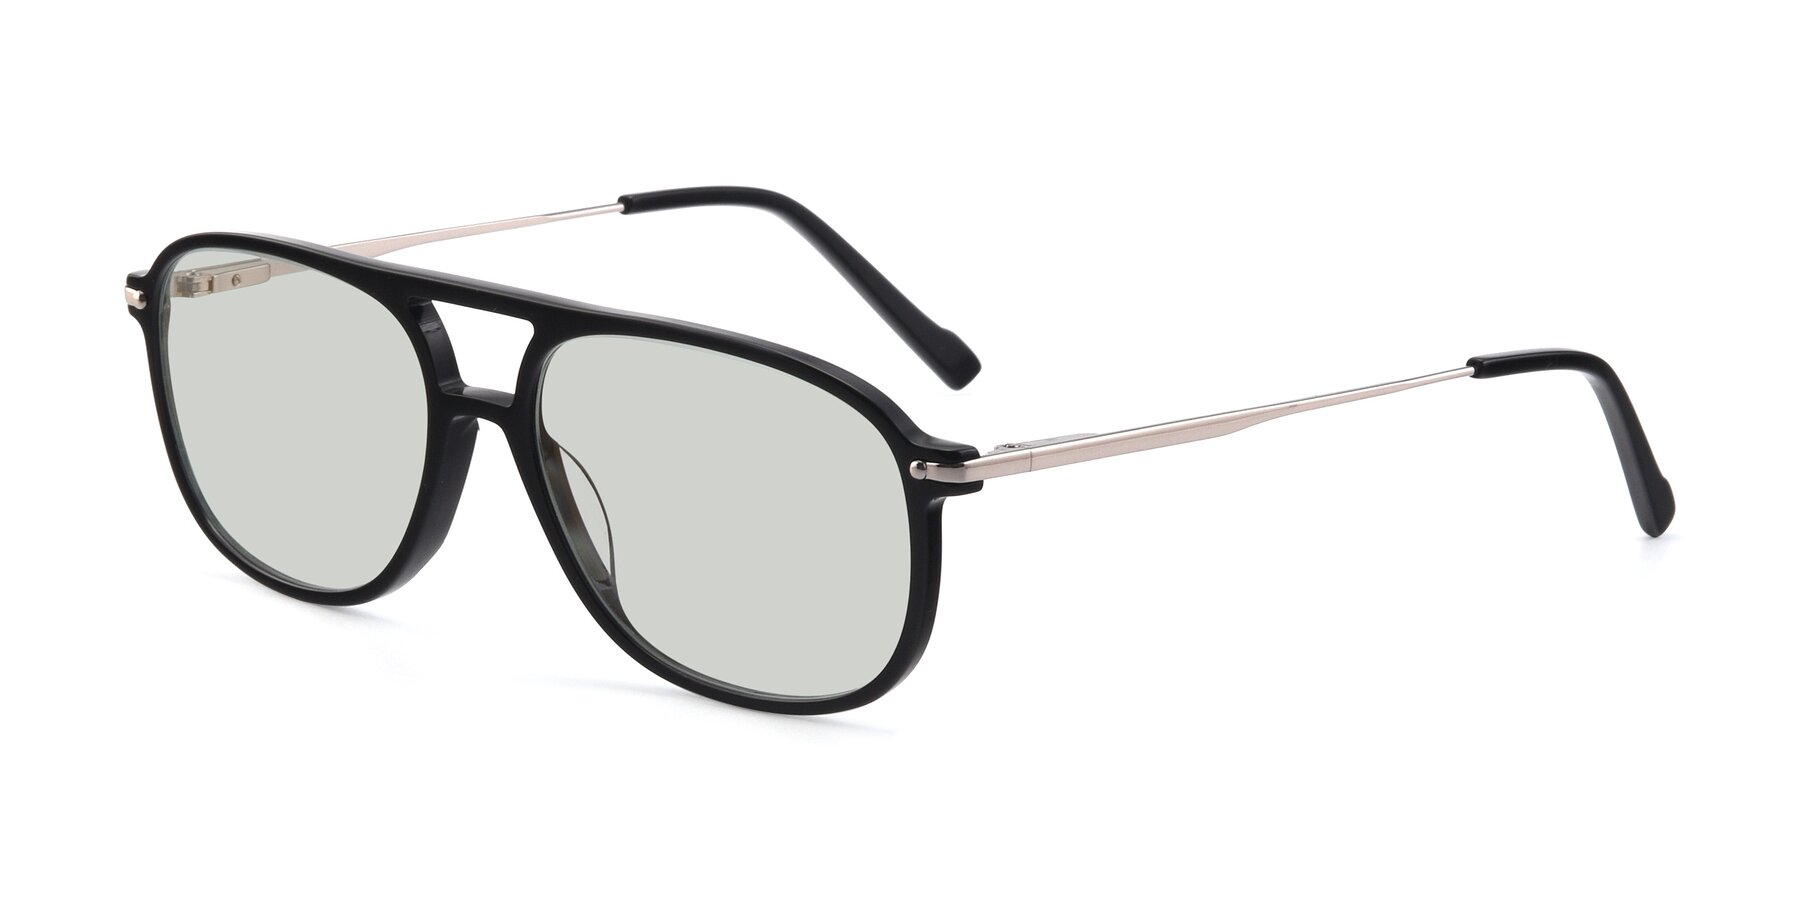 Angle of 17580 in Black with Light Green Tinted Lenses